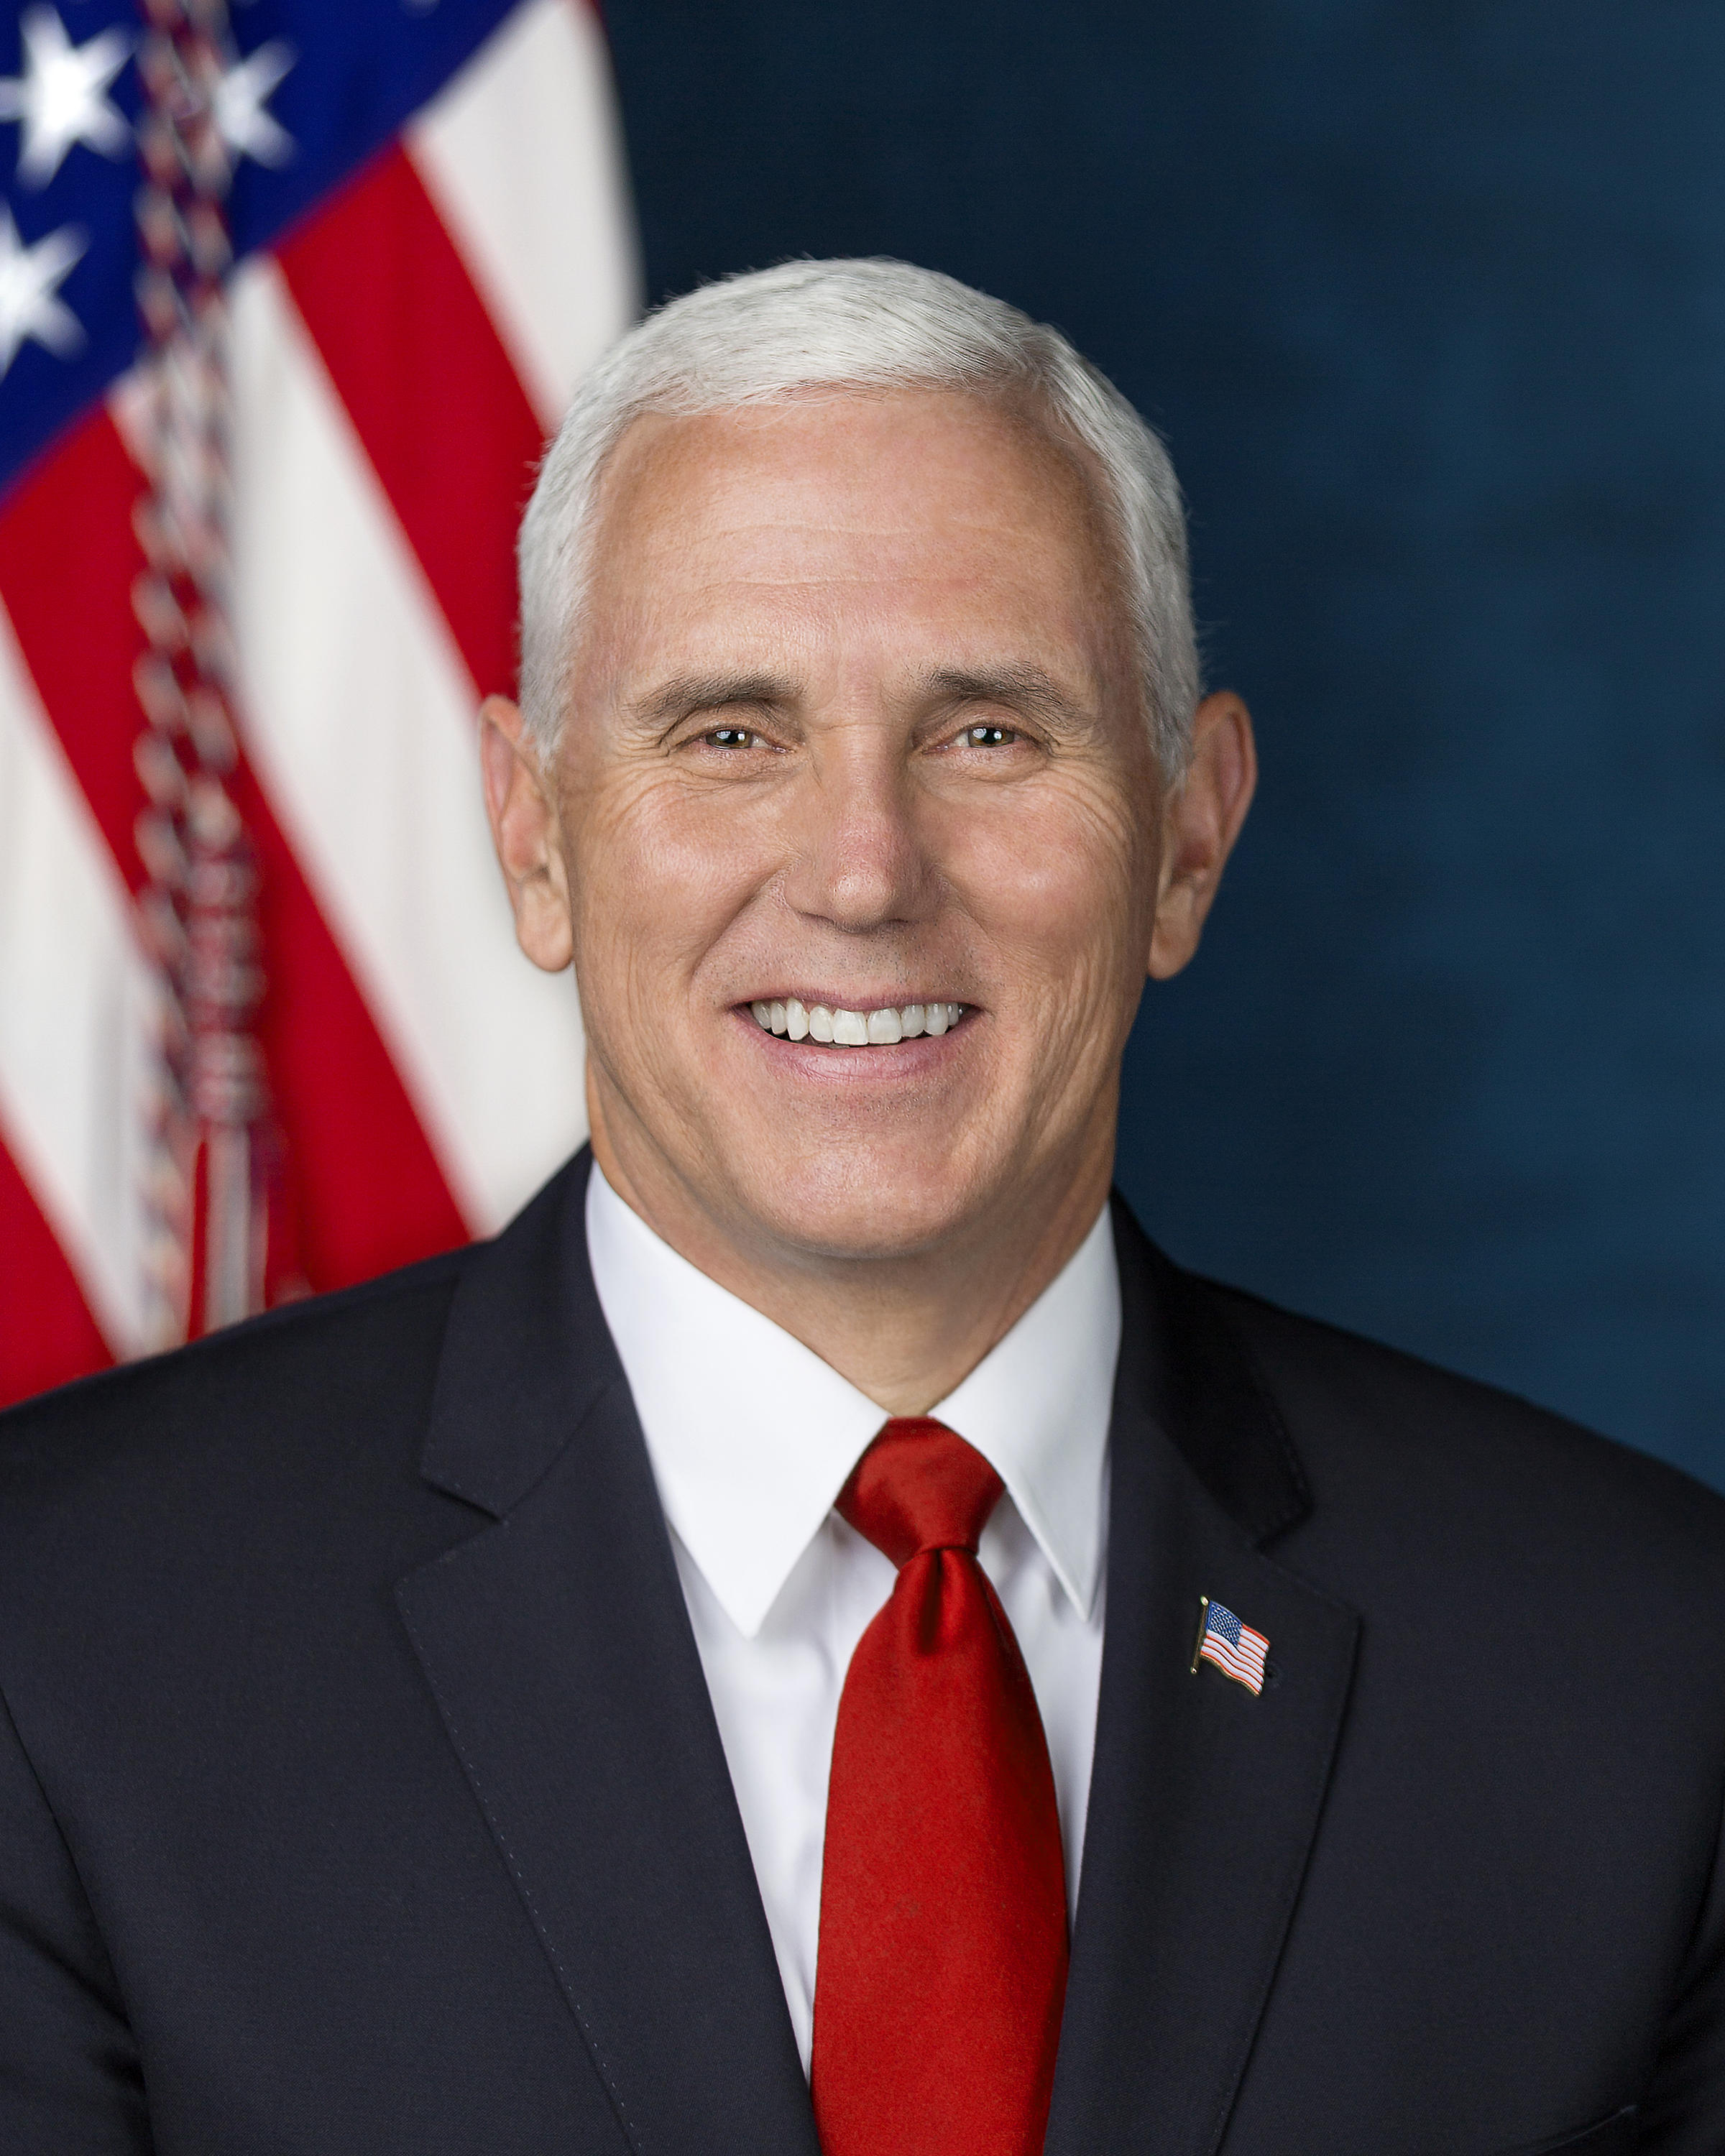 Vice President Pence addresses taxes in Detroit, talks about school shootings